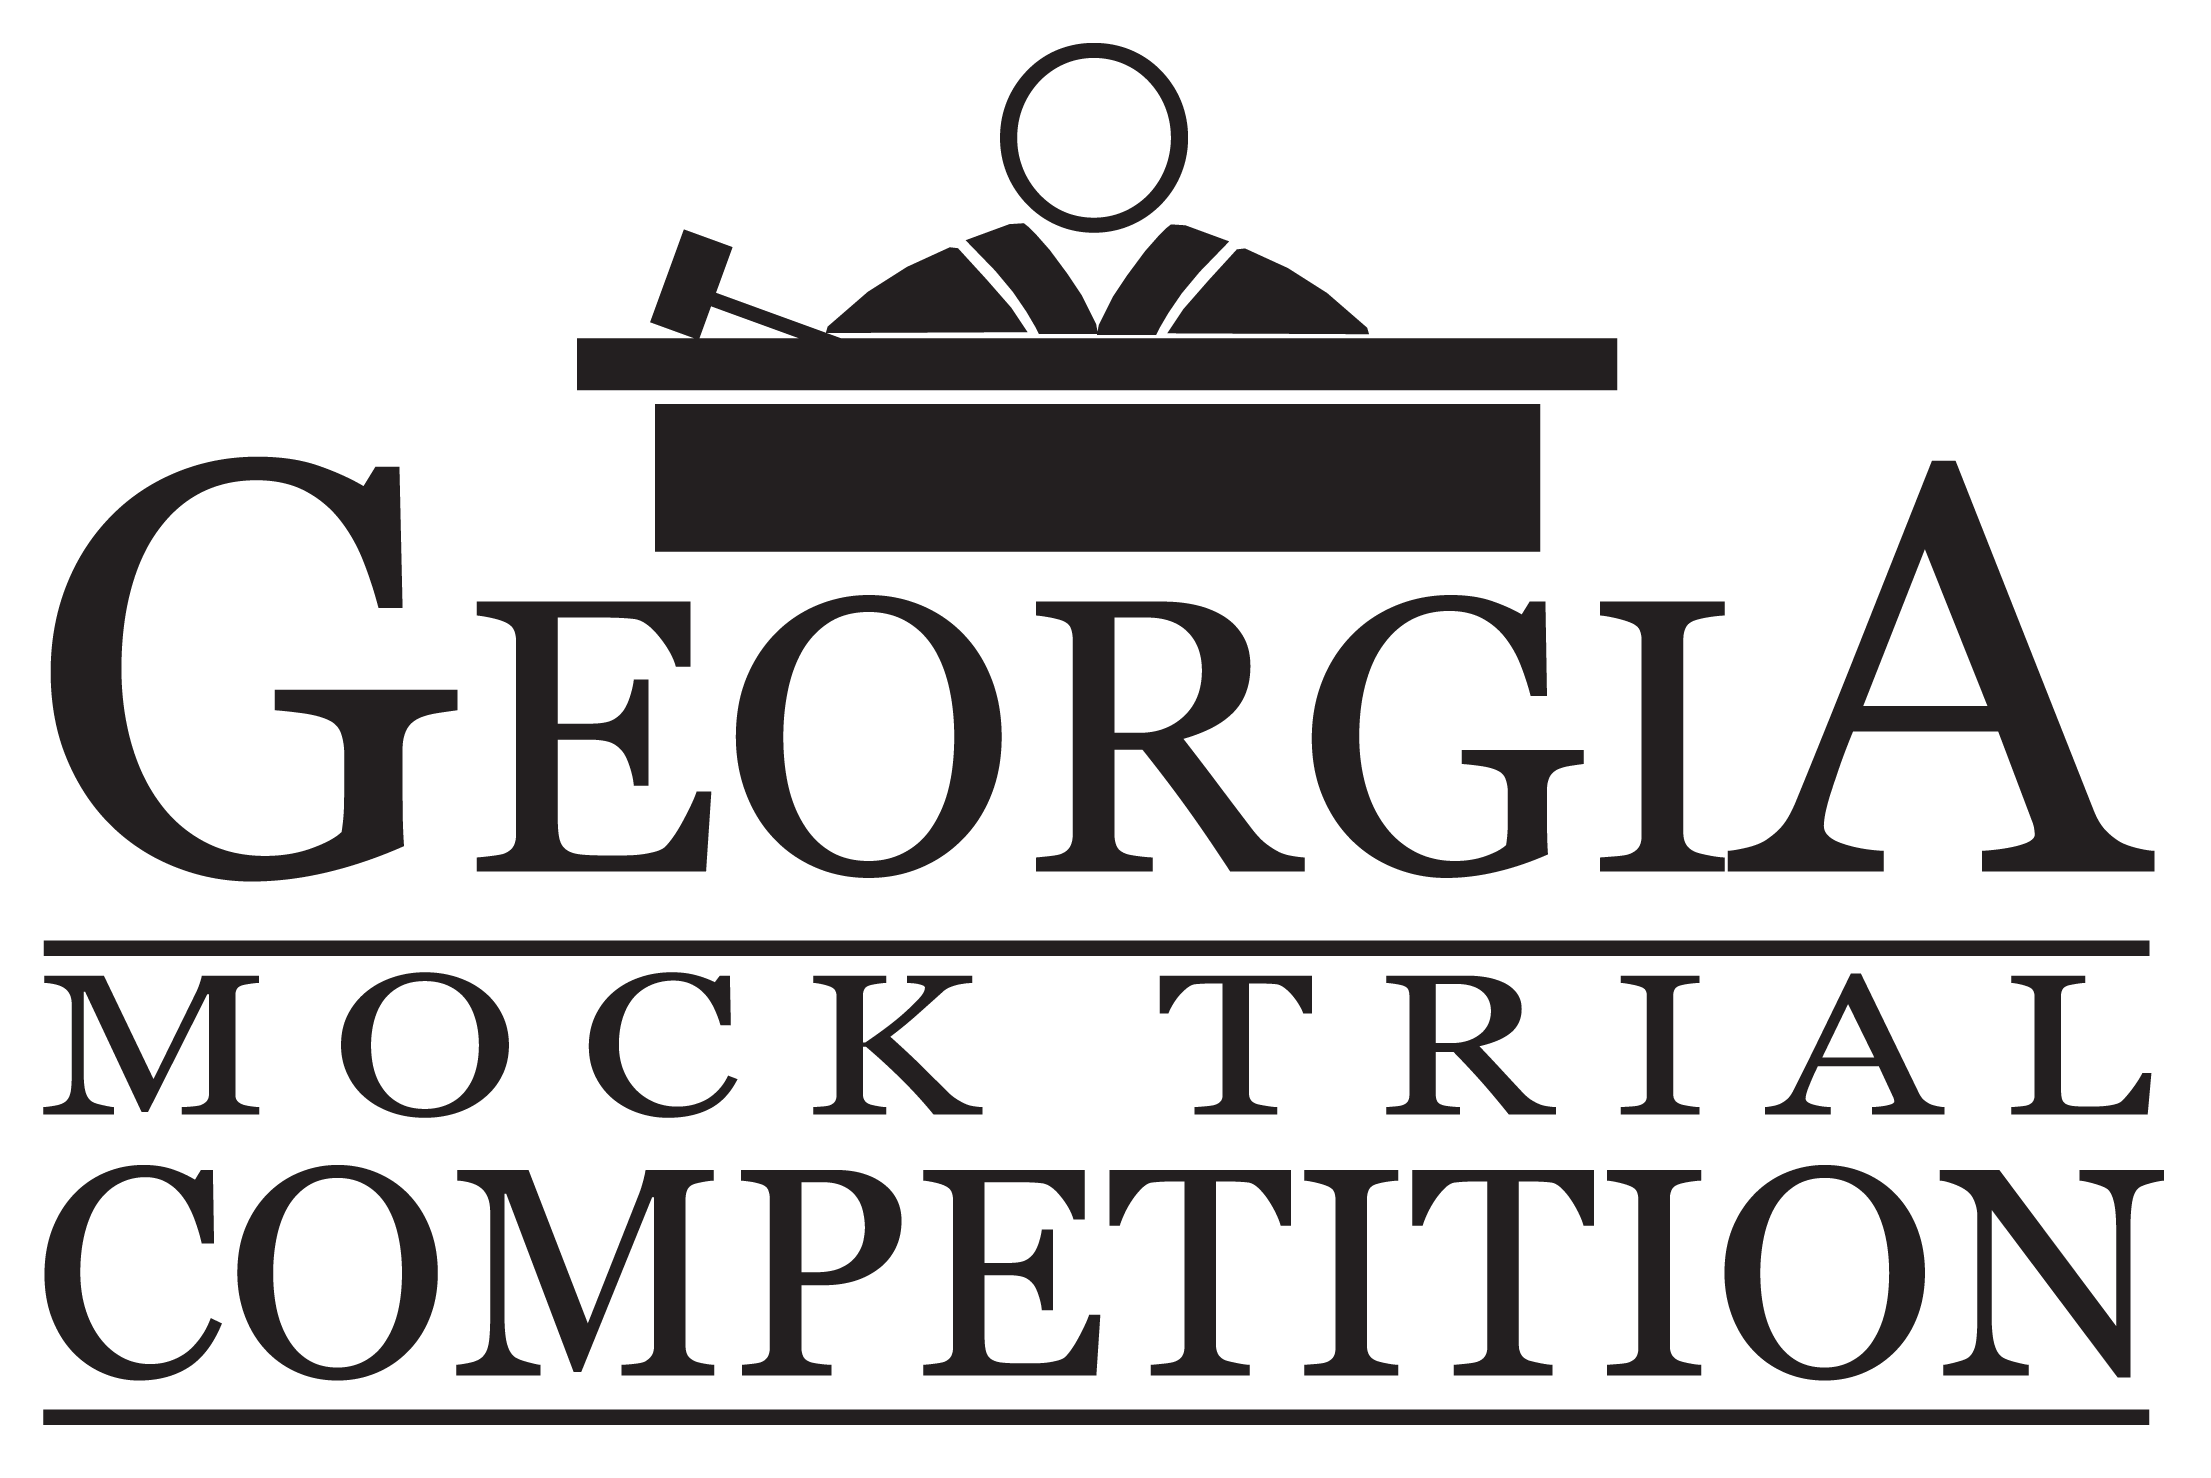 Court drawing mock trial. Georgia high school competition